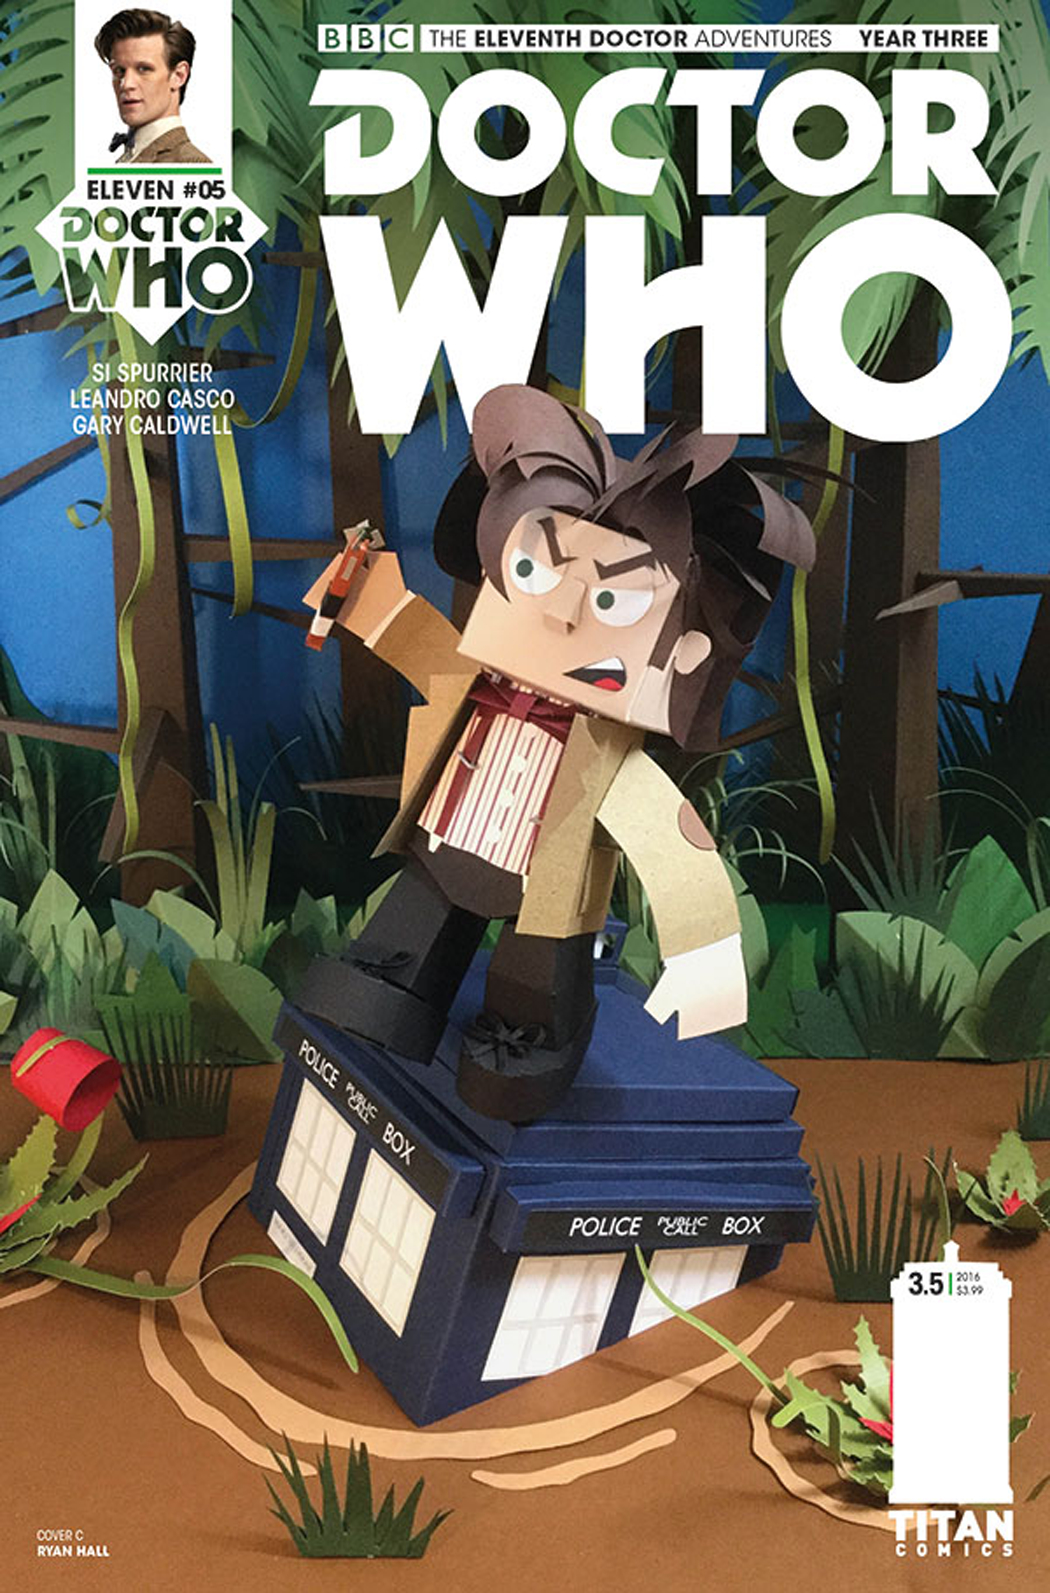 DOCTOR WHO 11TH YEAR THREE #5 CVR C PAPERCRAFT